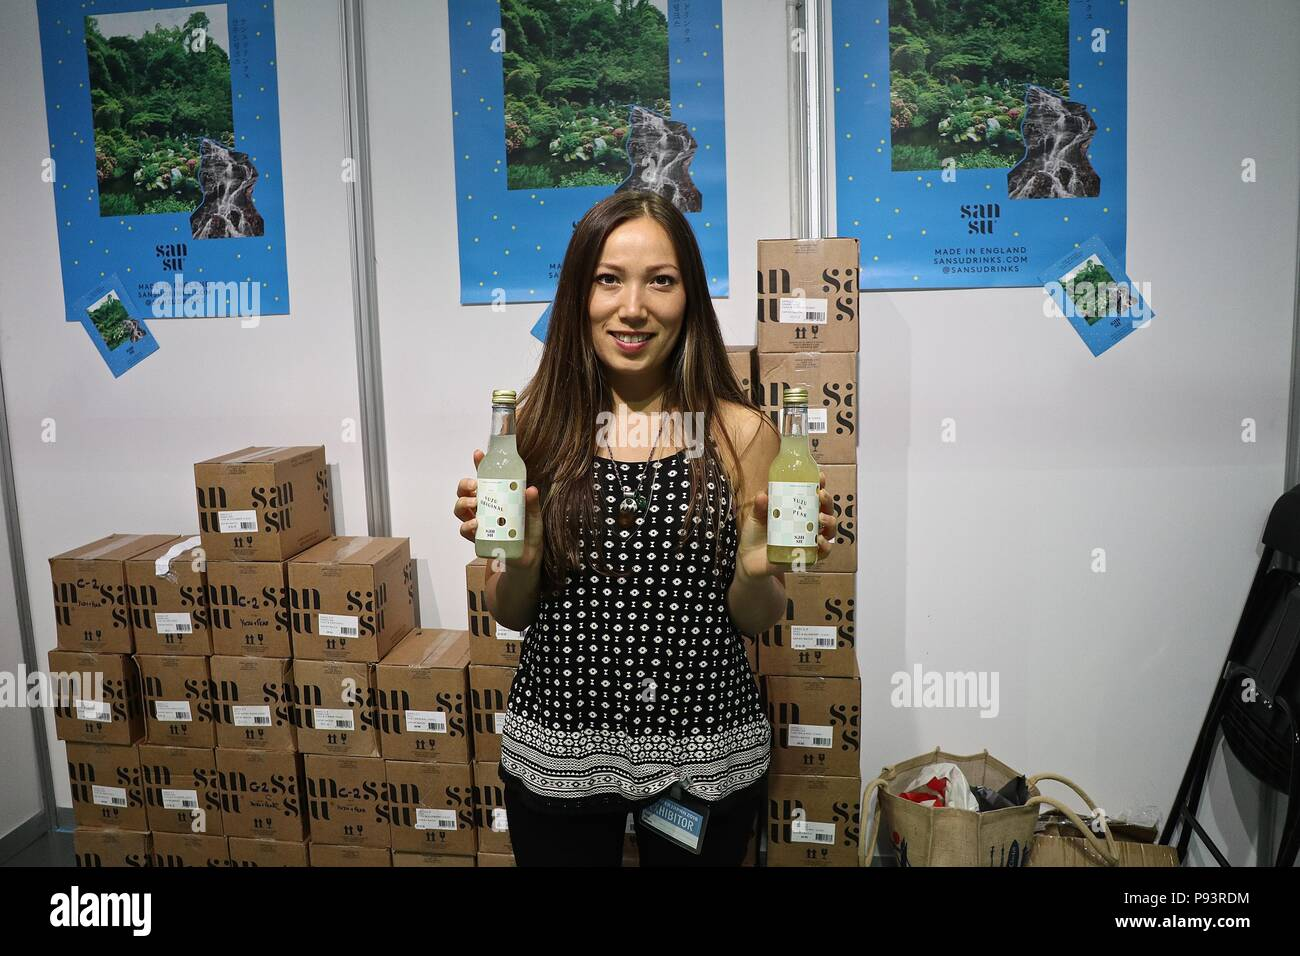 Hyper Japan 13 July 2018 OLYMPIA LONDON - Stock Image